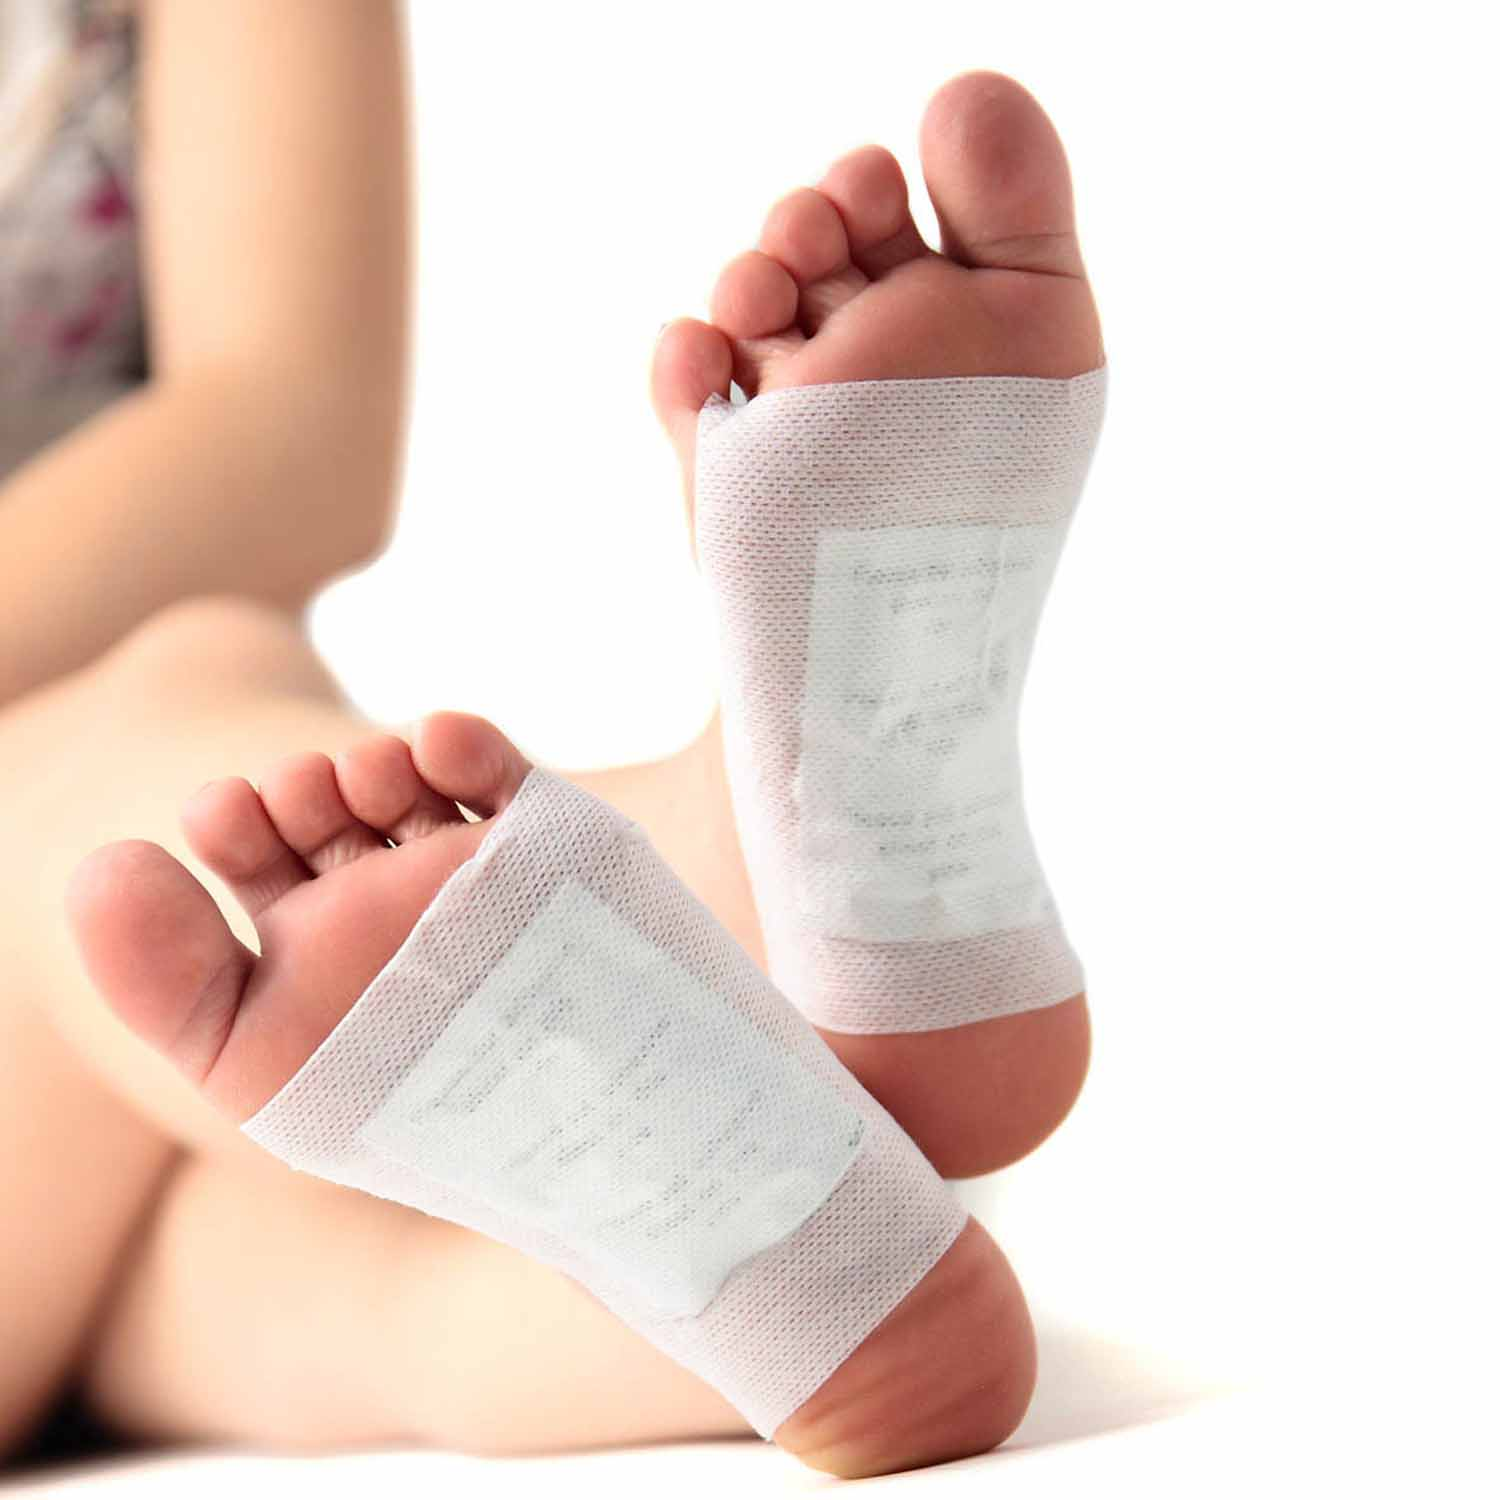 10pcs/box Detox Foot Pads Patches with Retail Box and Adhesive Pads(10pcs Adhesive) foot Cleansing massager